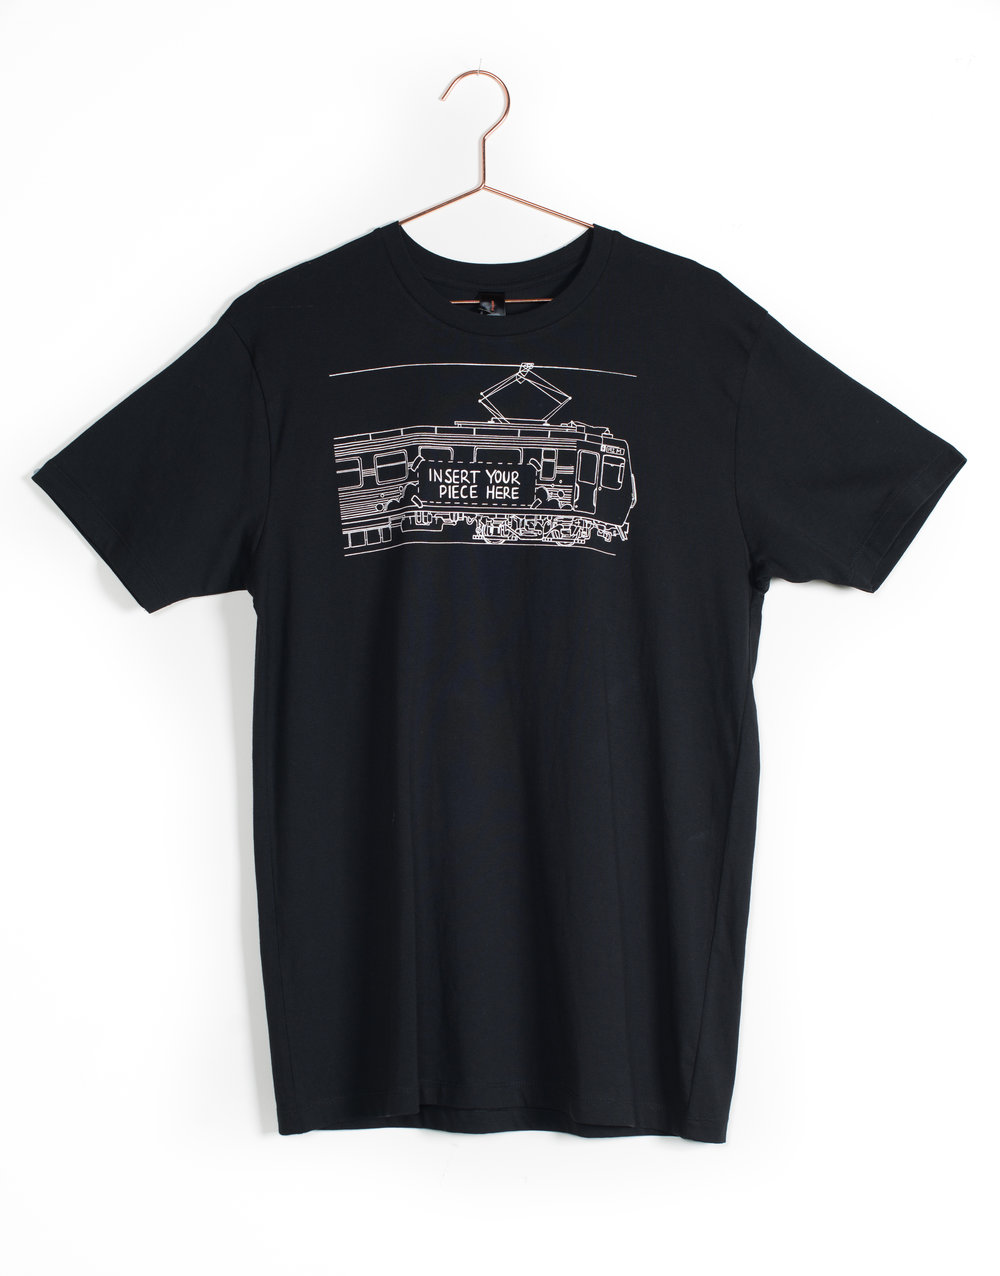 Industrial_tshirt_sample1.jpg